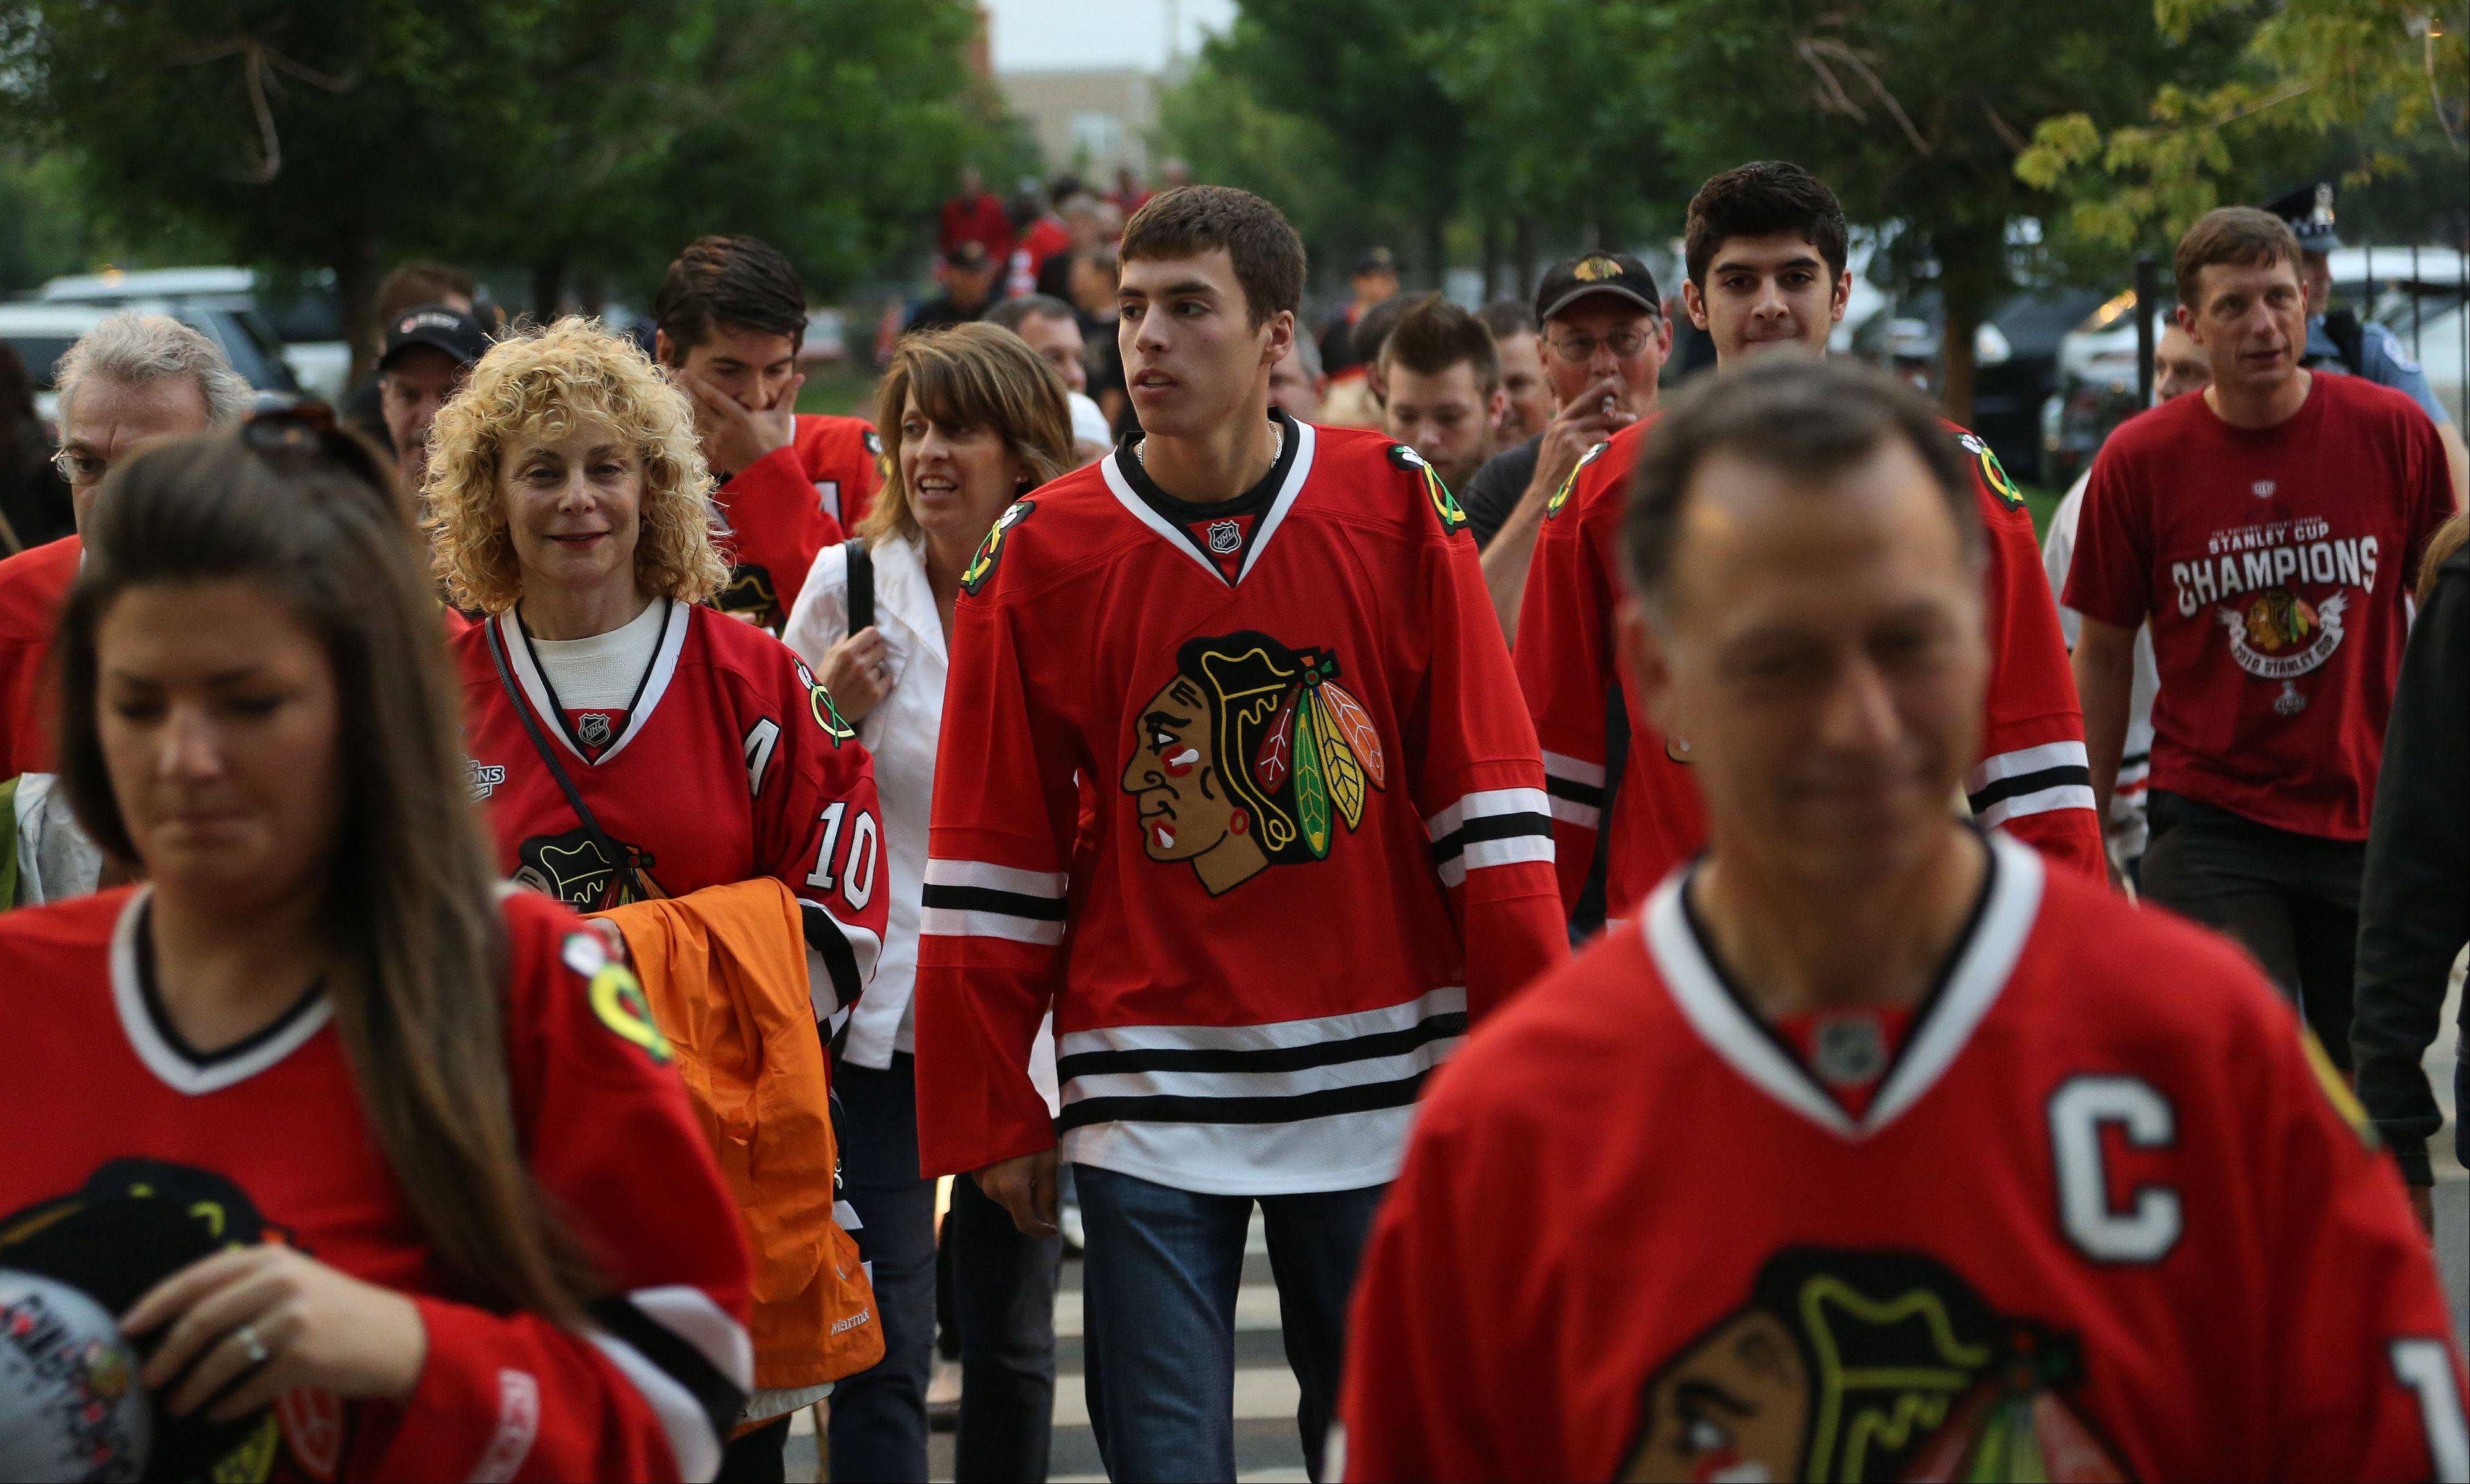 Steve Lundy/slundy@dailyherald.comBlackhawks fans are all red as they make their way into the United Center before Wednesday night's game one of the Stanley Cup Finals against the Boston Bruins.